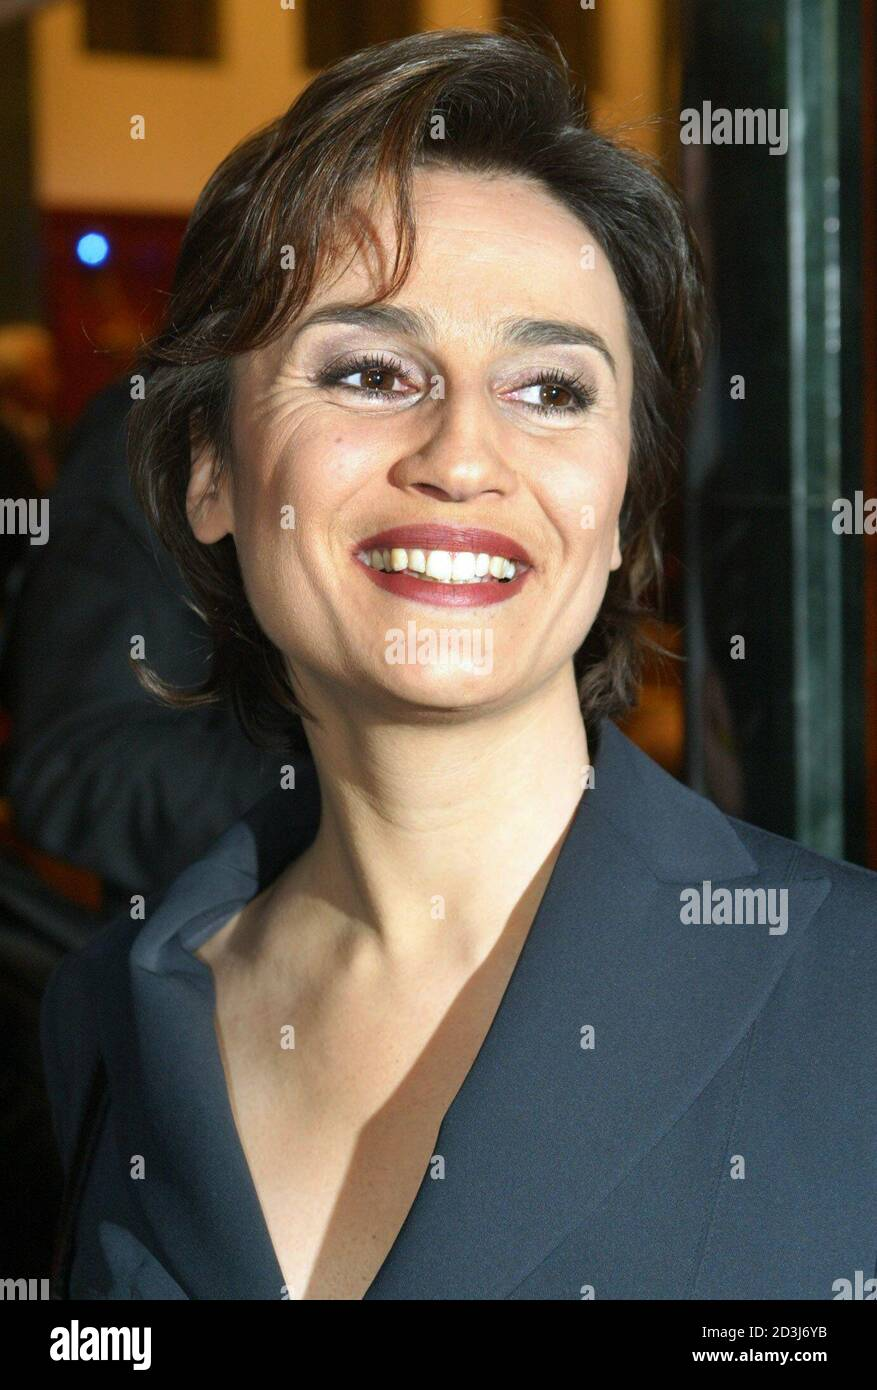 Sandra Maischberger, German television presenter of NTV broadcasting station smiles during a reception in the German capital Berlin January 20, 2003. Maischberger attends a celebration for the 65th birthday of Paul Spiegel, president of the German Jew Council. REUTERS/Fabrizio Bensch  FAB Stock Photo